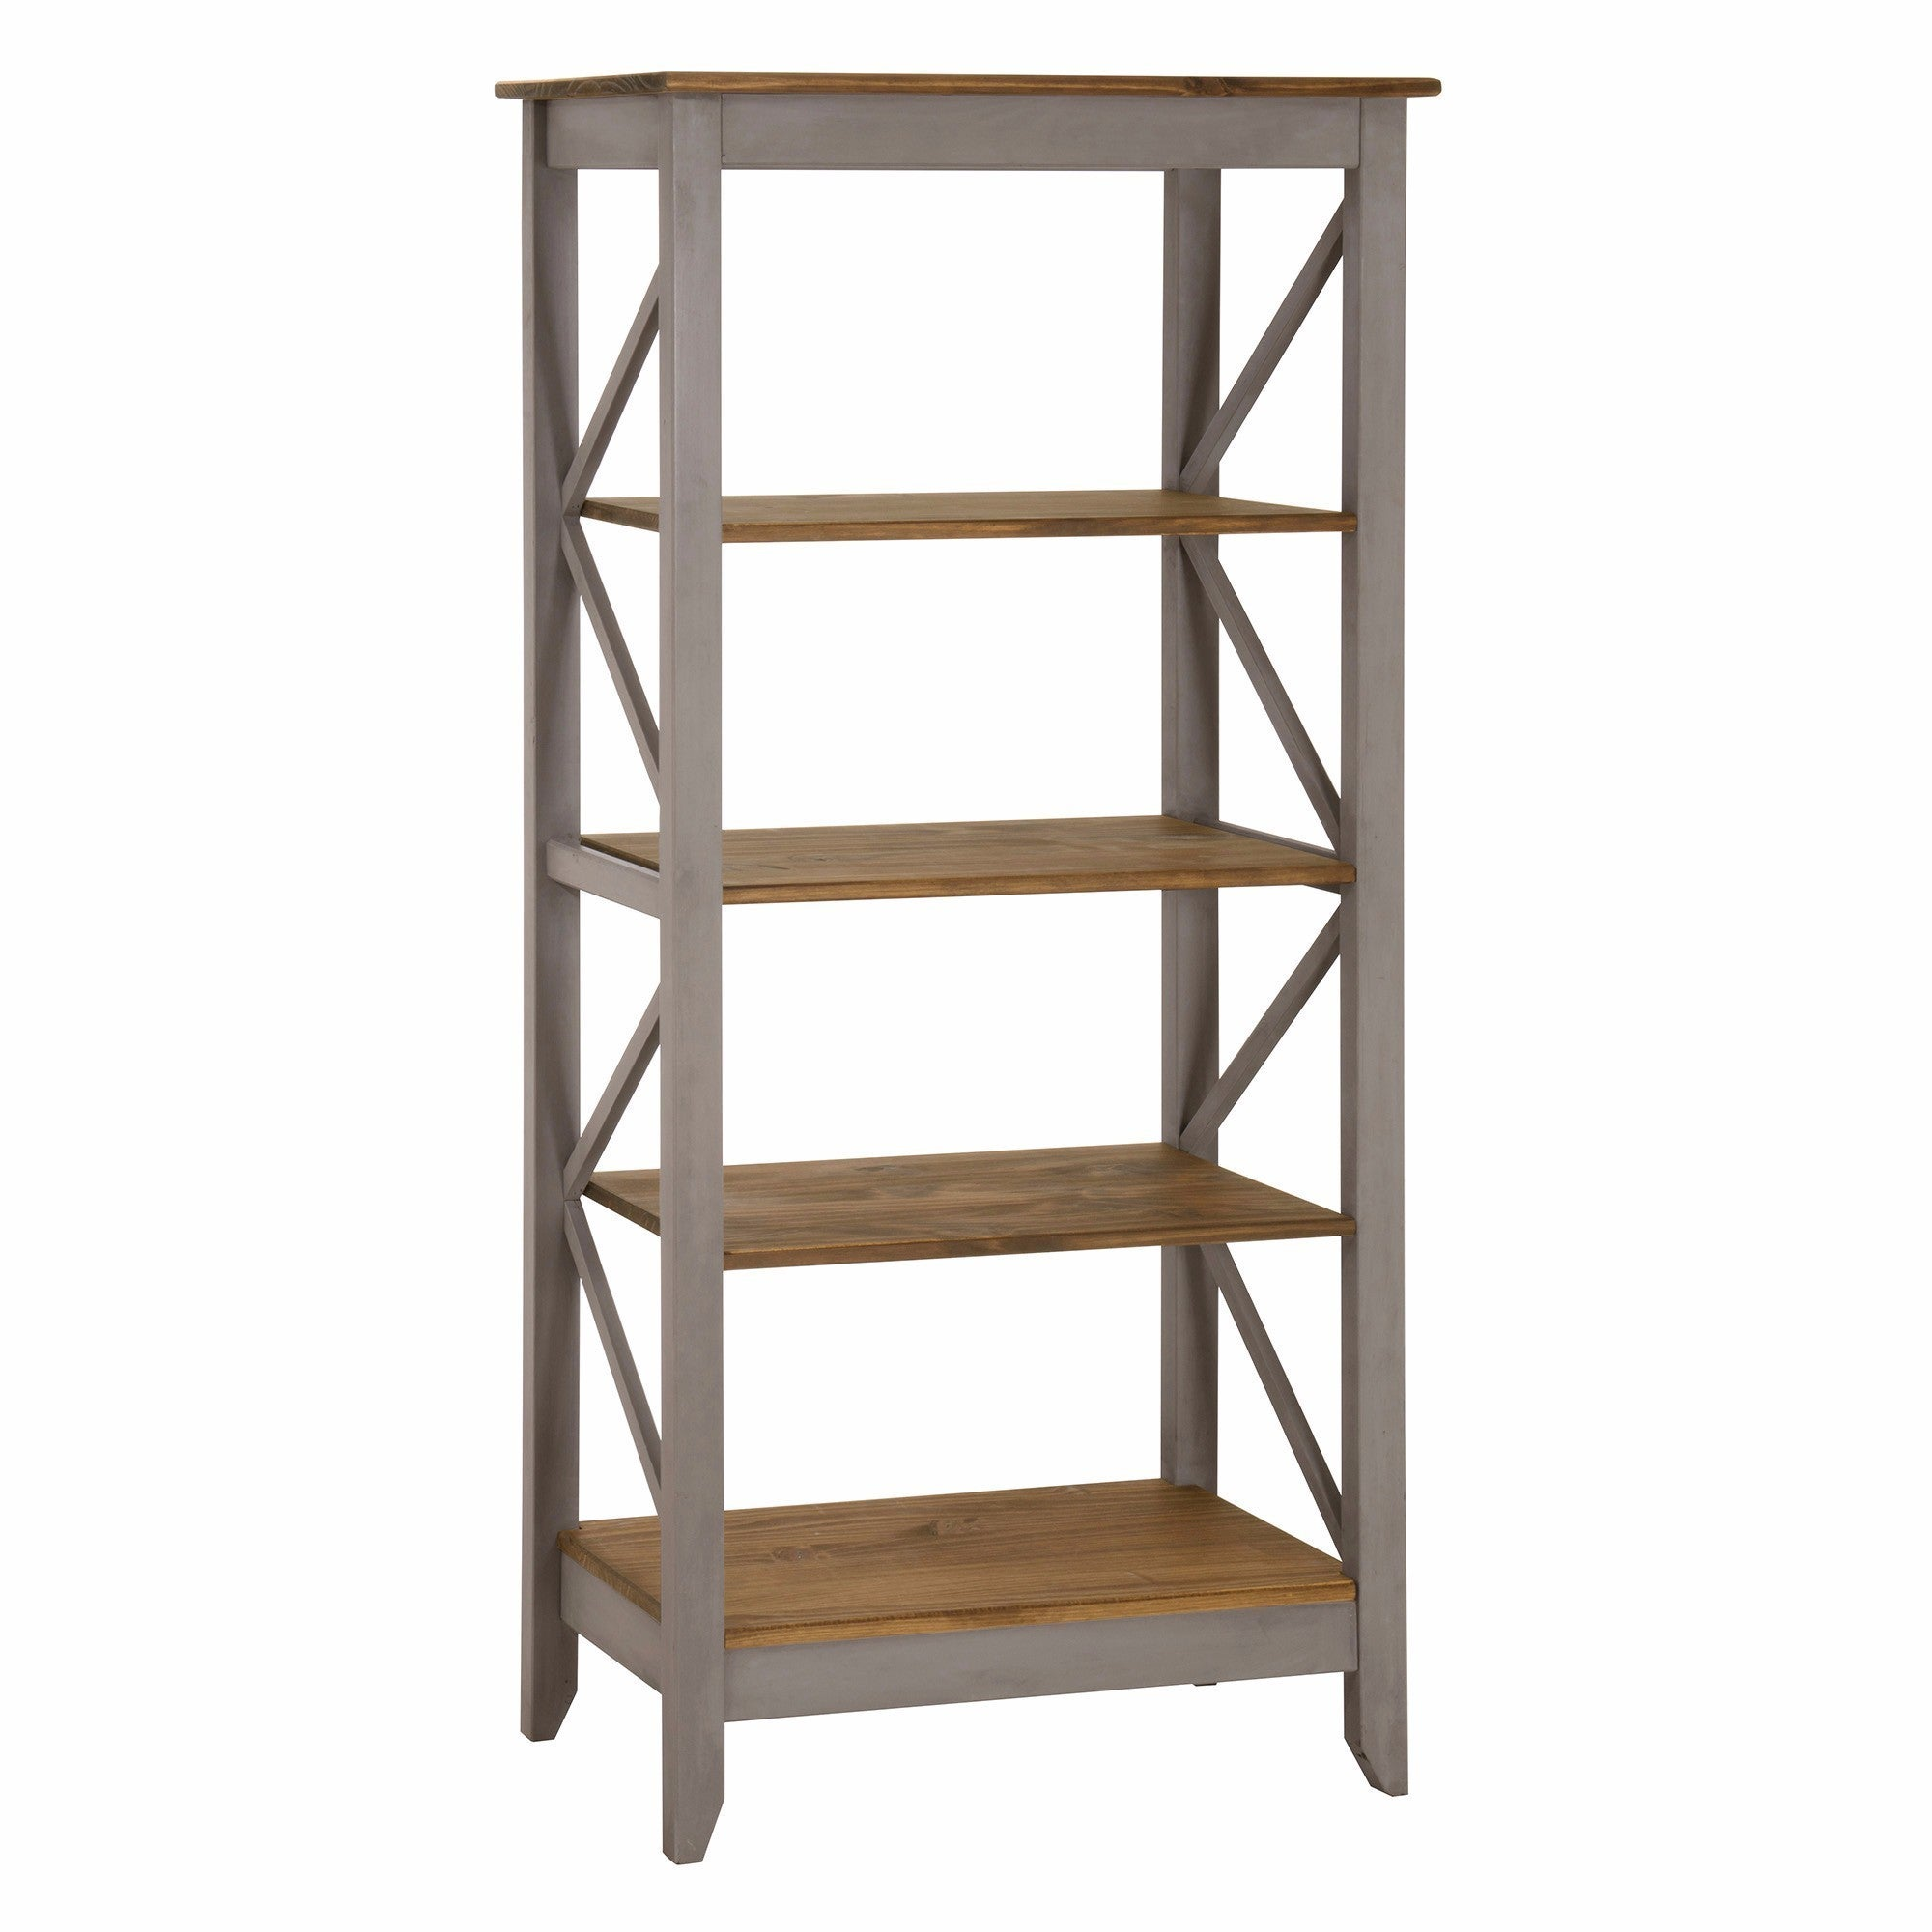 bookcases wood garden comfort free overstock solid product inch bookcase shipping today shelf manhattan home jay